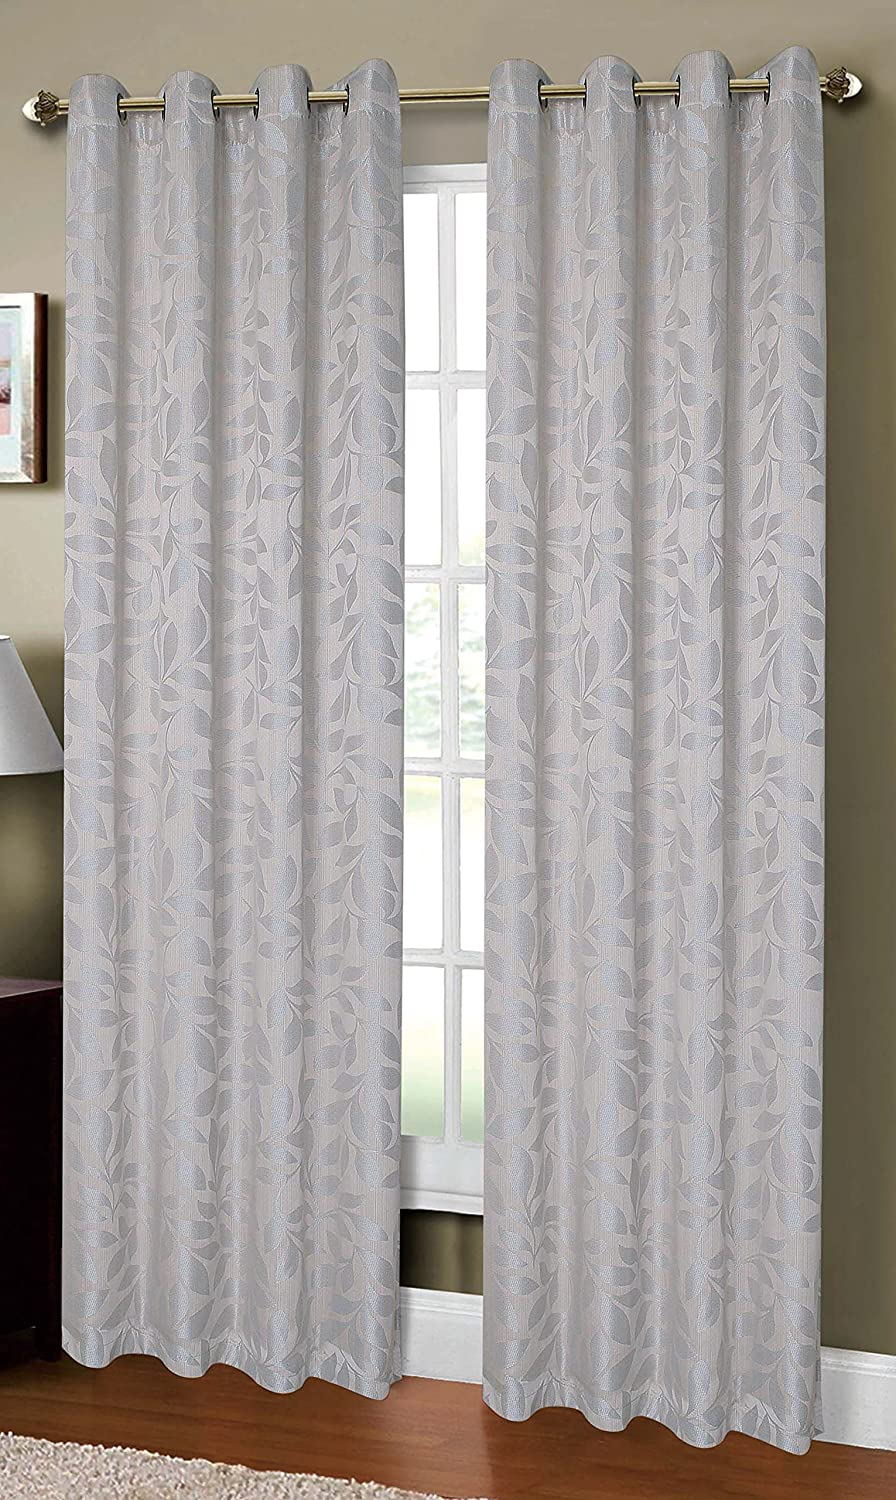 Taupe Creative Home Ideas YMC002008 Curtain Panel Pair Window Elements Alpine Textured Woven Leaf Jacquard Grommet  108 x 96 in